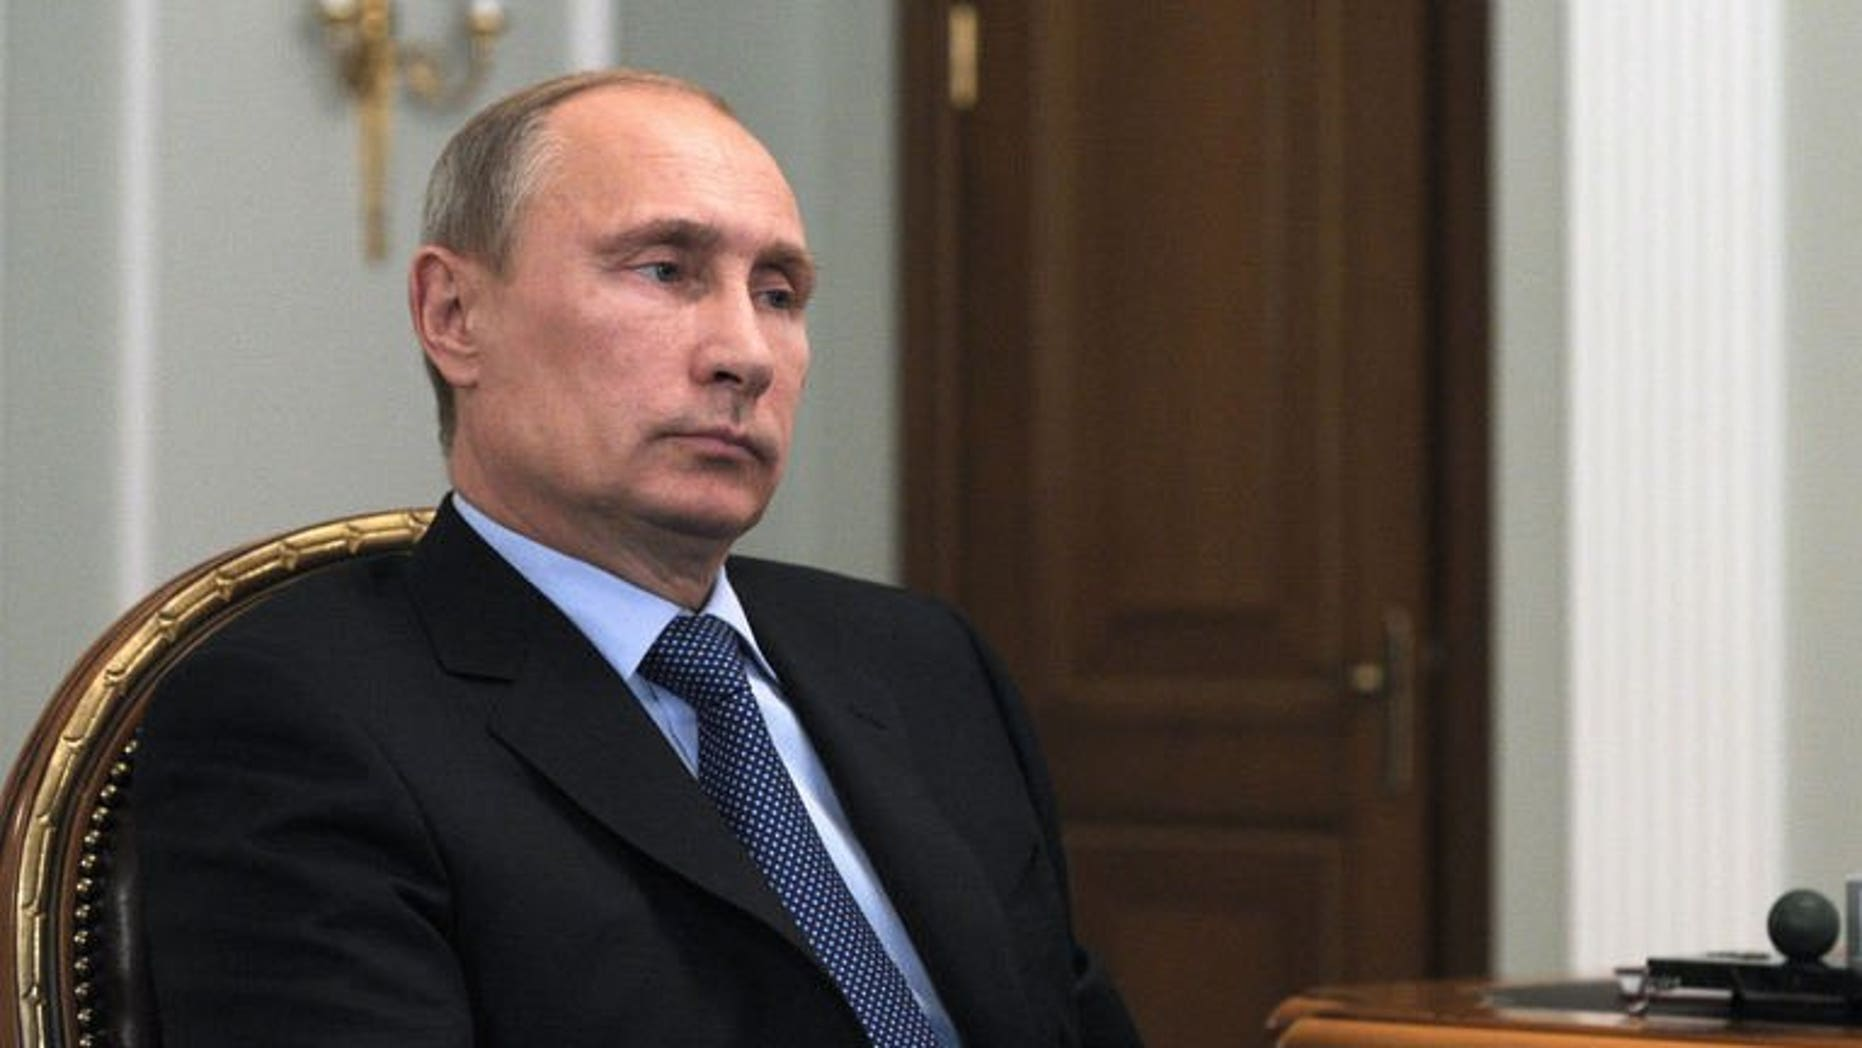 Russia's President Vladimir Putin attends a meeting in his Novo-Ogaryovo residence outside Moscow, on September 20, 2013.